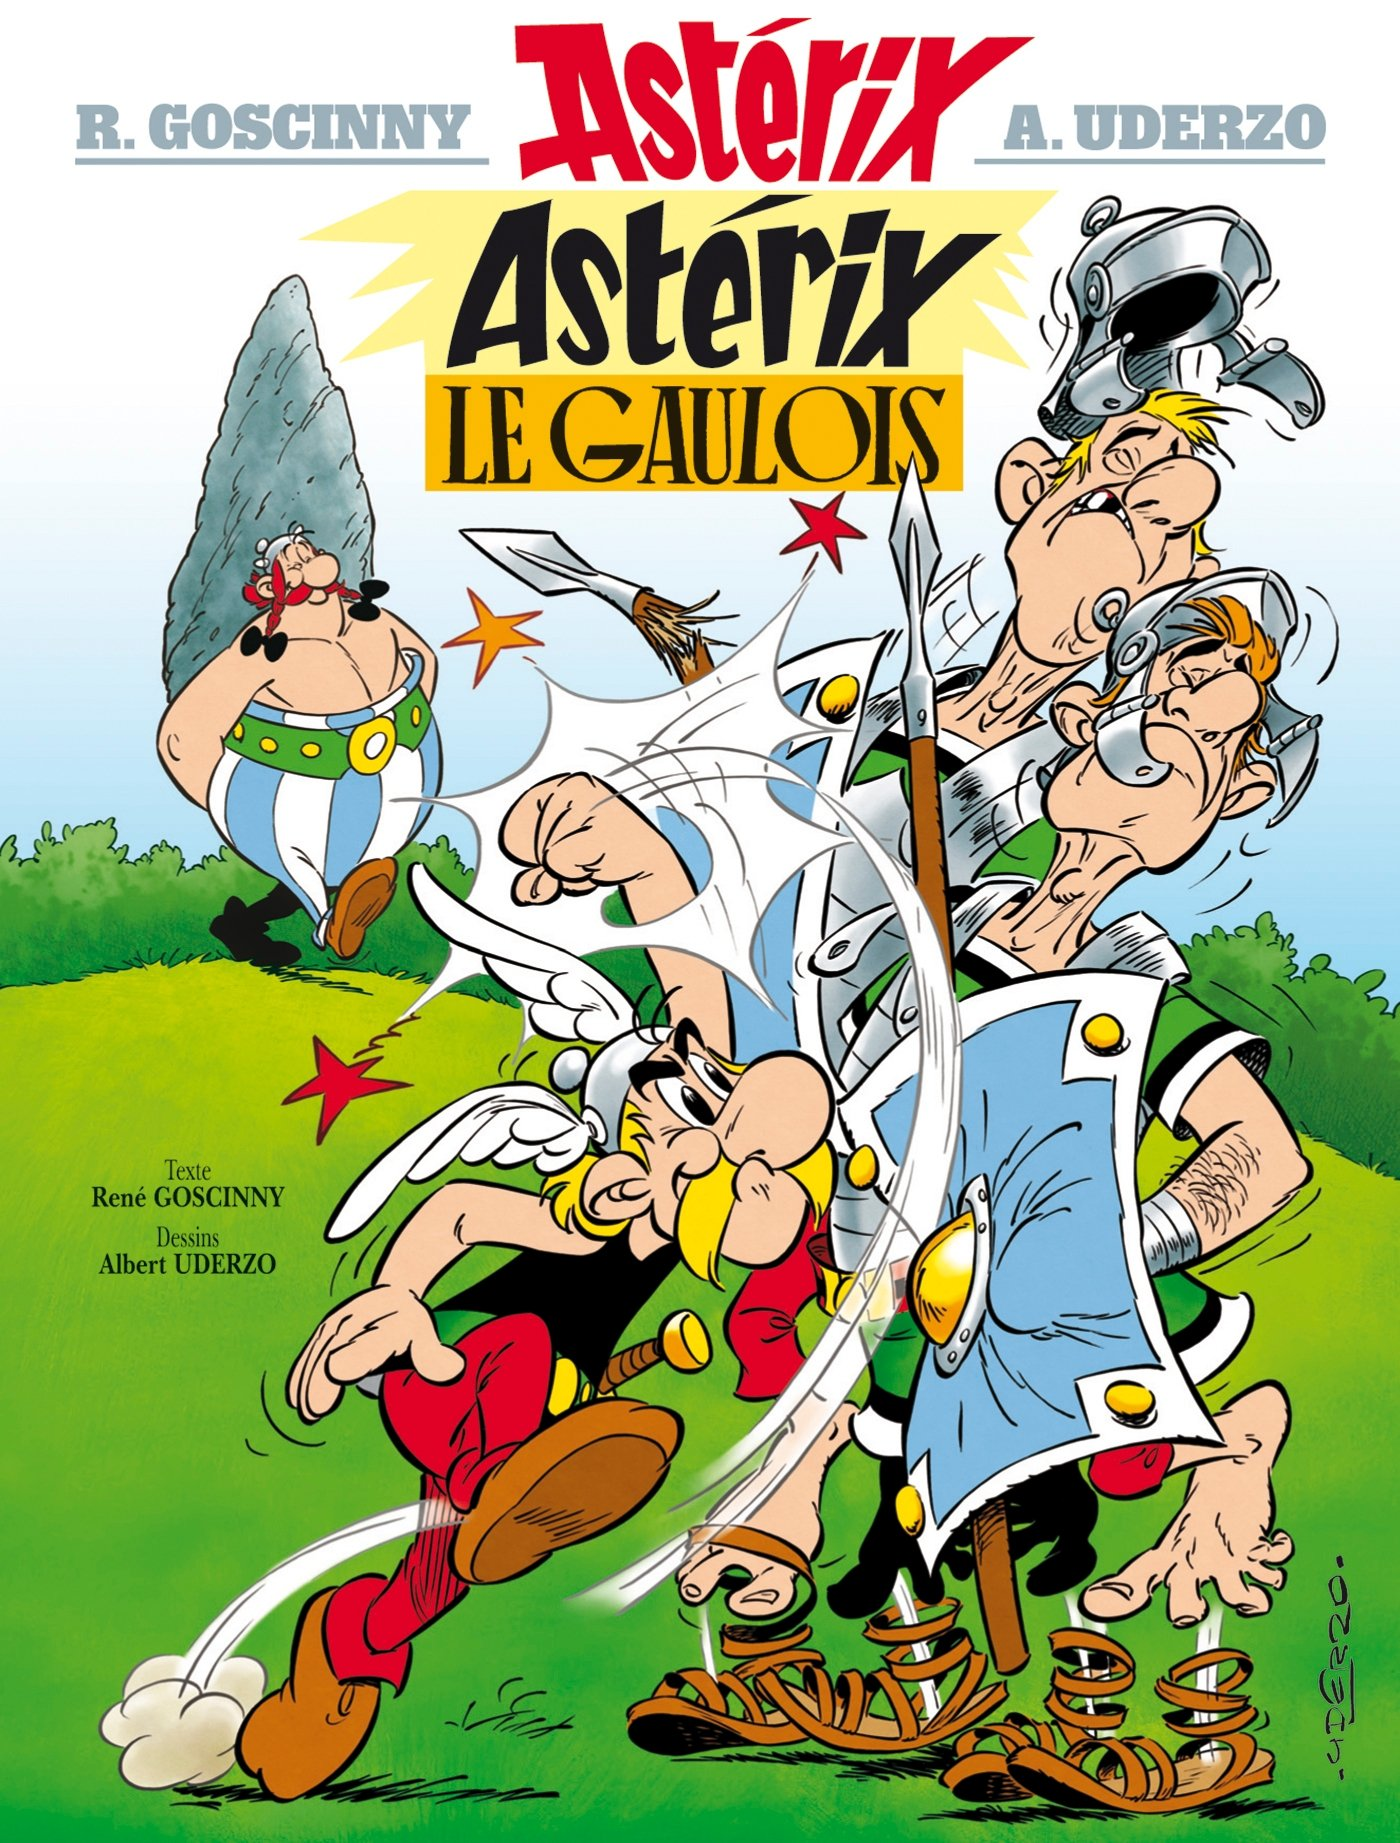 Astérix le gaulois - one of the top 10 translated books in the world